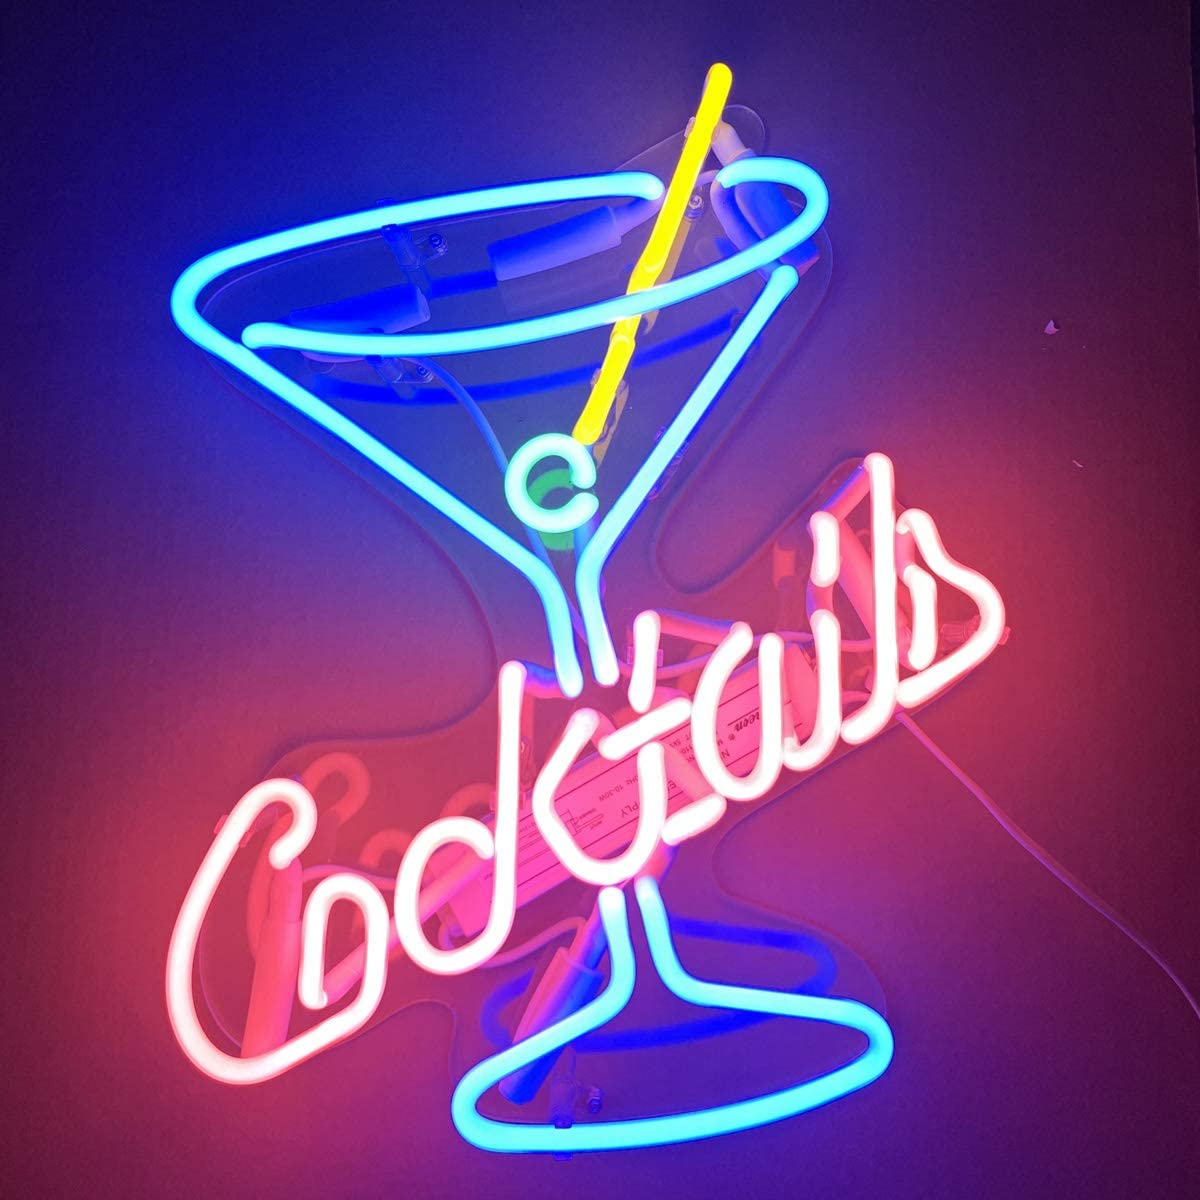 Neon Signs Cocktails Beer Bar Bedroom Home Neon Light Handmade Glass Neon Lights Sign for Bedroom Office Hotel Pub Cafe Recreation Room Wall Decor Night Light